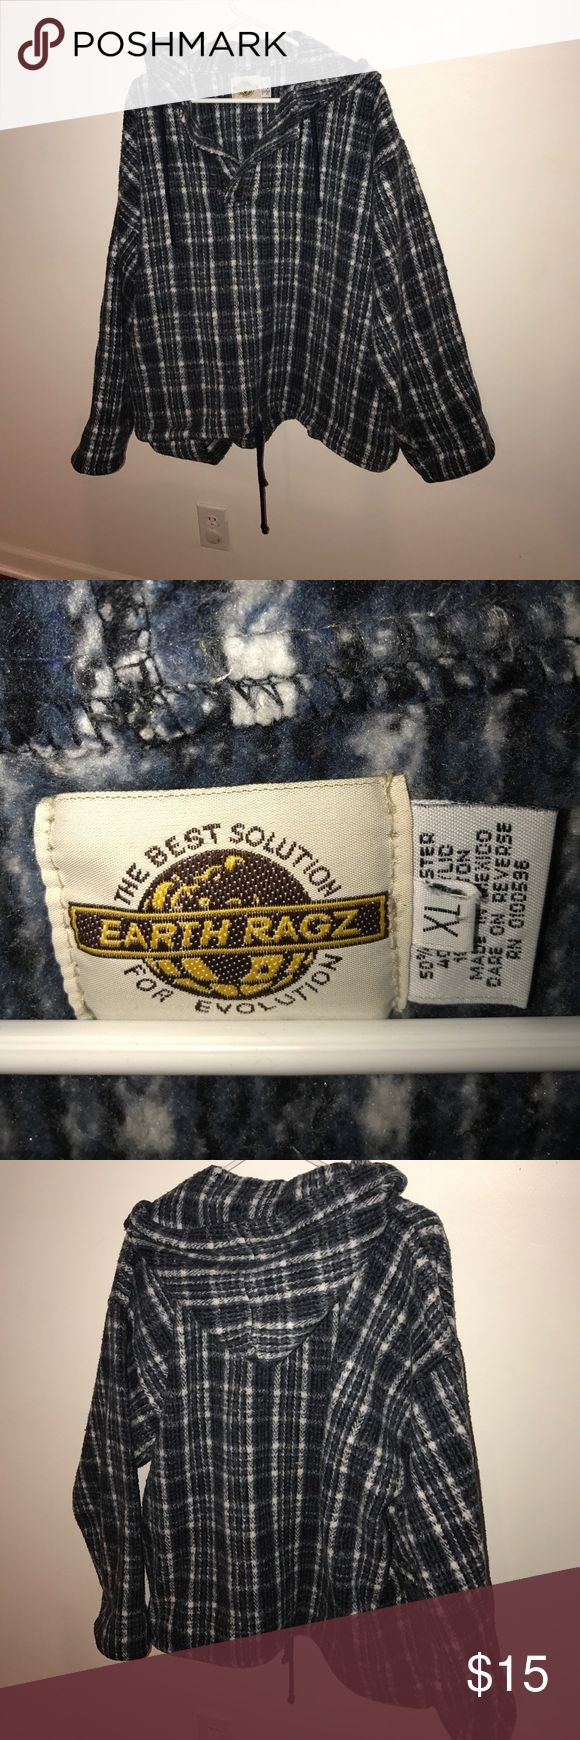 Earth Ragz hooded size XL blue and white plaid Earth Ragz hooded shirt size XL blue and white plaid. Across the shoulders is 25 inches; pit to pit is 25 inches; from shoulder seam to wrist is 23 inches; length from shoulder seam to bottom hem is 27 inches. This shirt is really thick and warm. earth ragz Shirts Sweatshirts & Hoodies